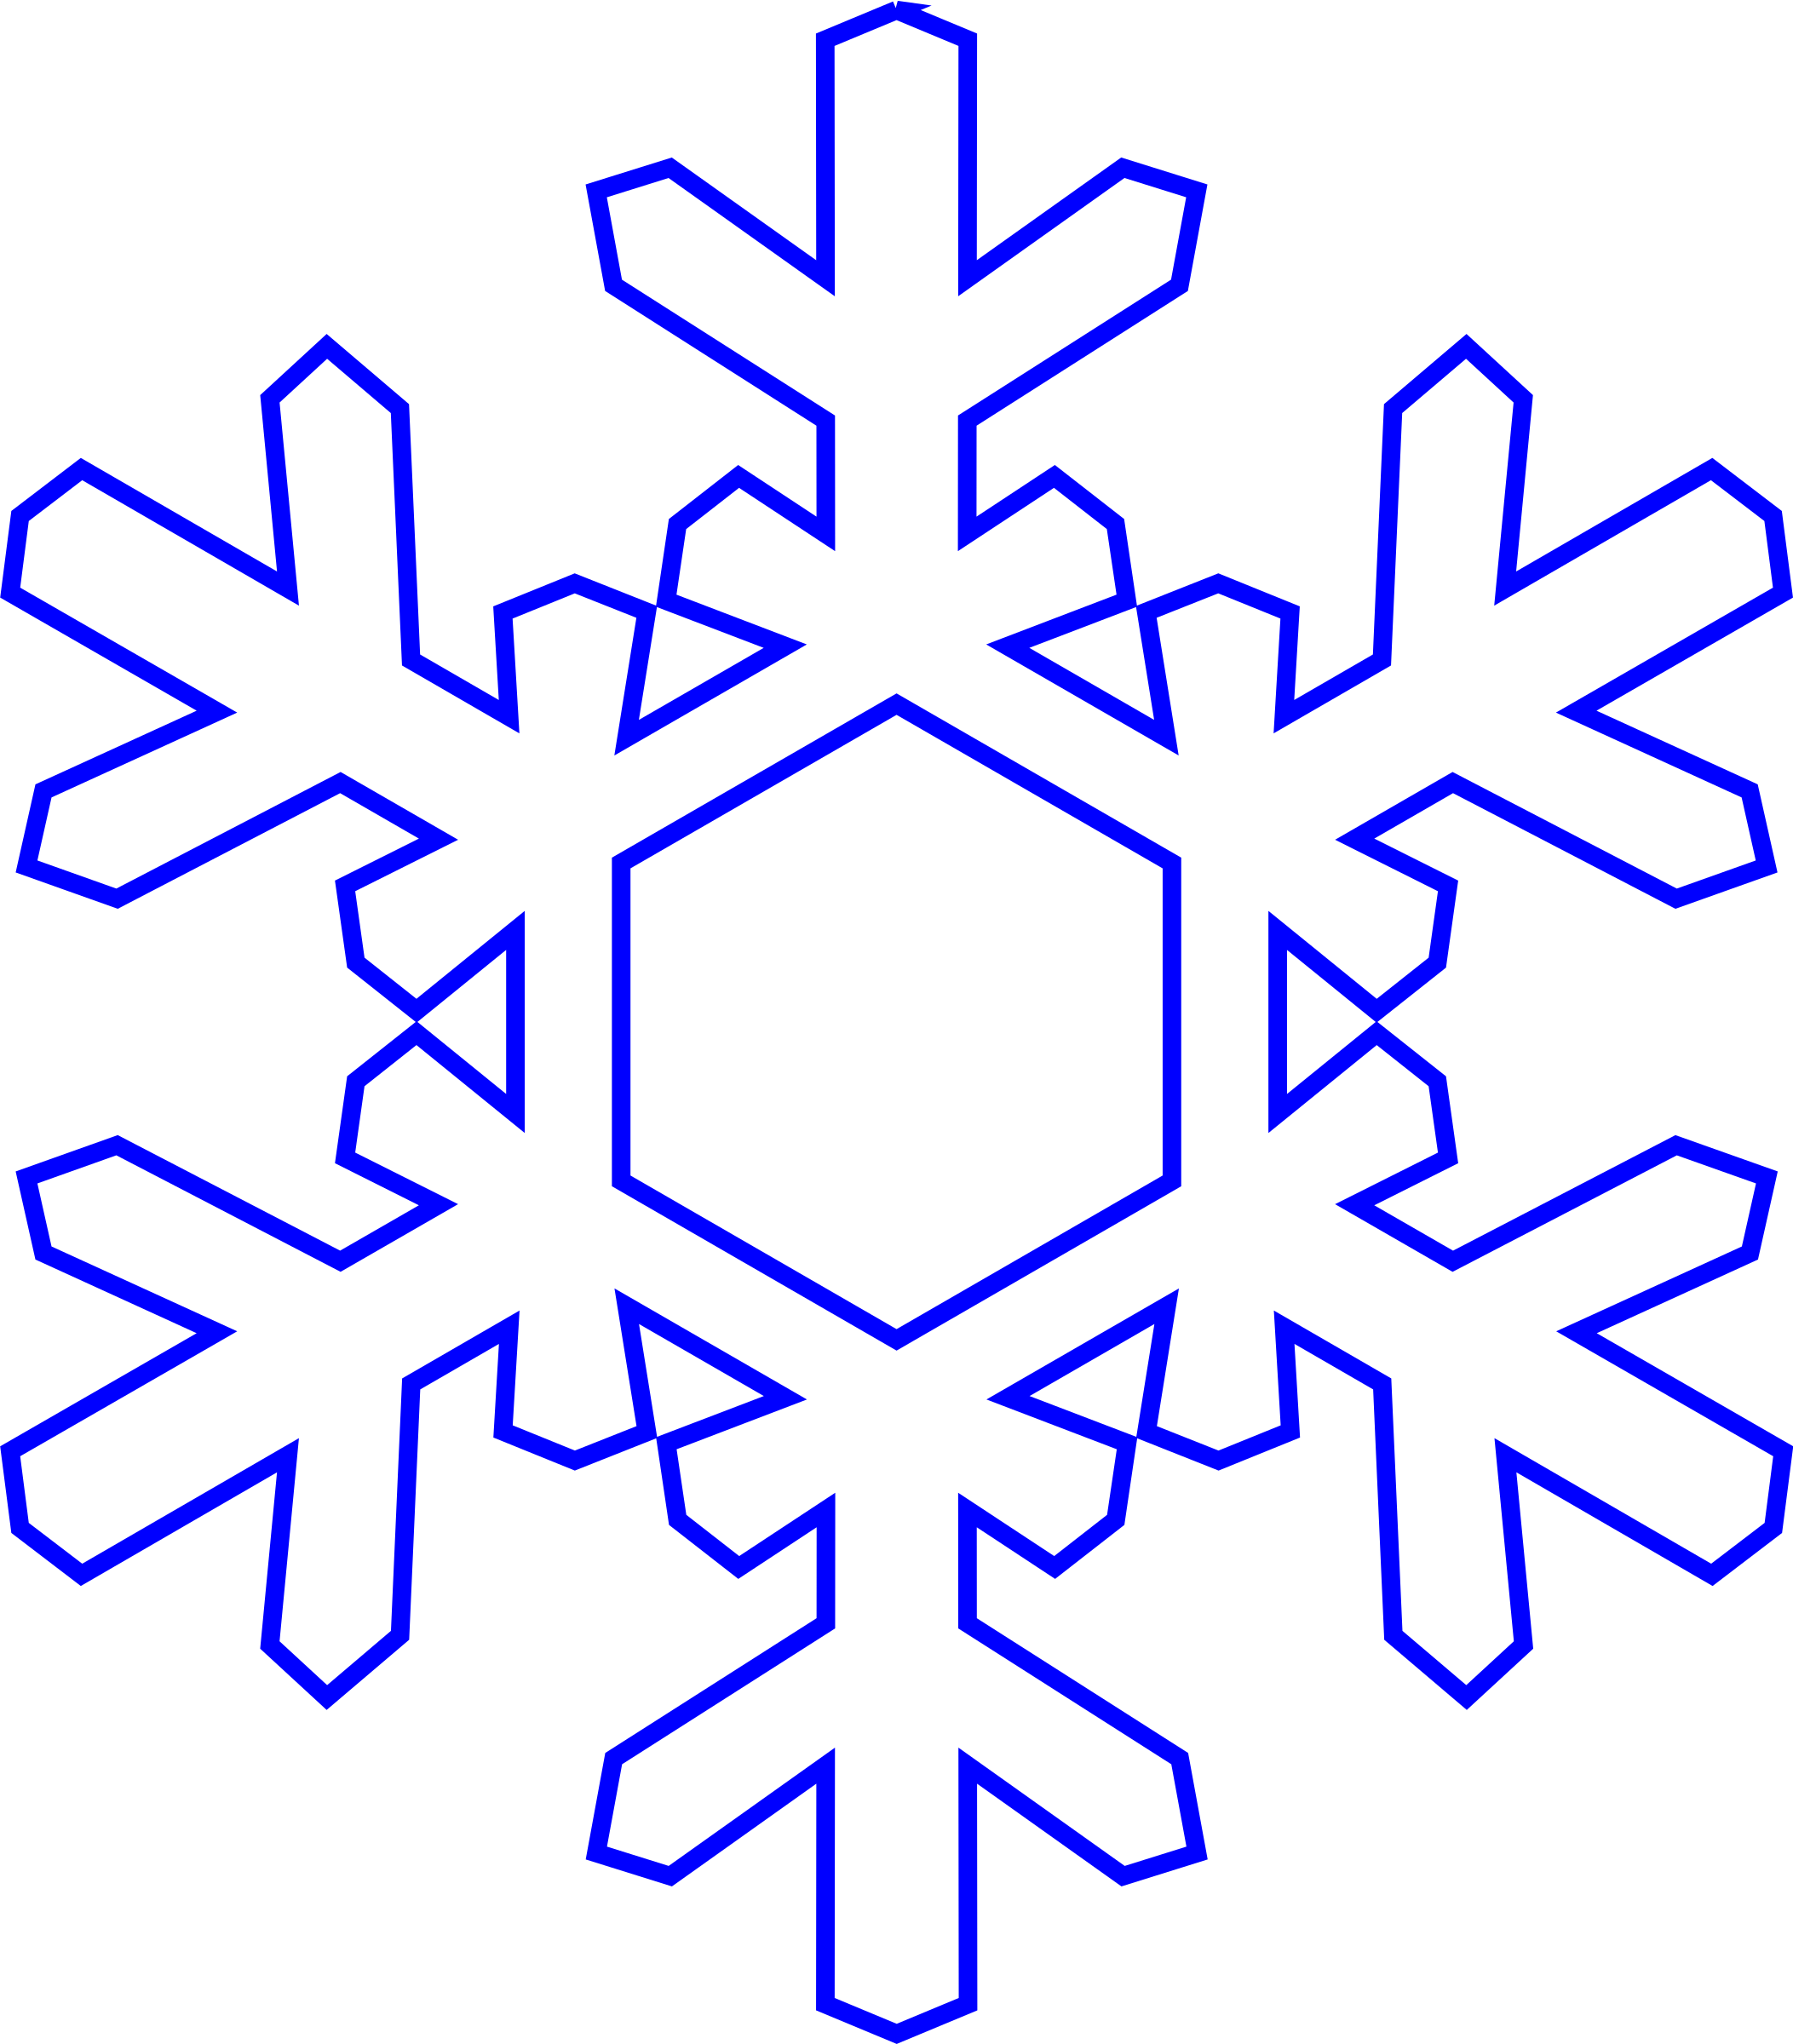 Snowflake clipart with face clipart transparent library Real Snowflake Cliparts | jokingart.com Snowflake Clipart clipart transparent library